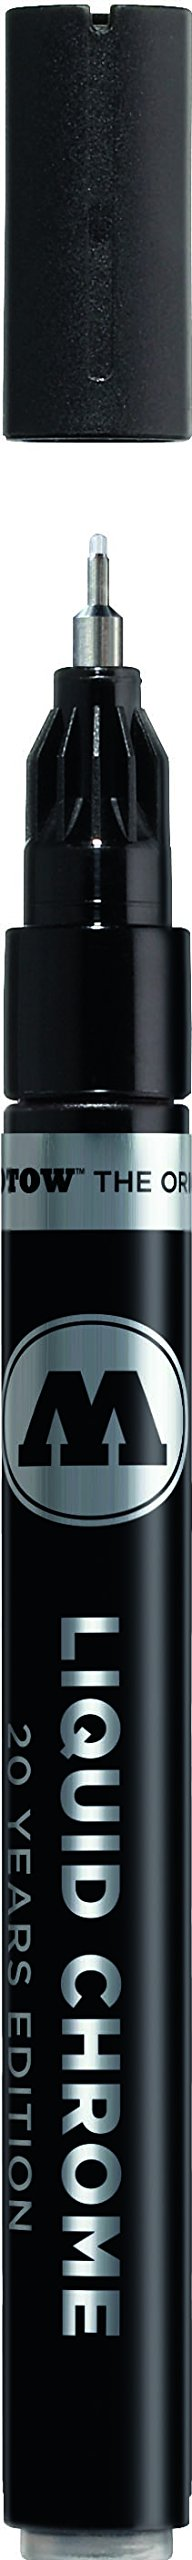 Molotow Liquid Chrome Pump Marker Pen - 1mm Nib 703.101